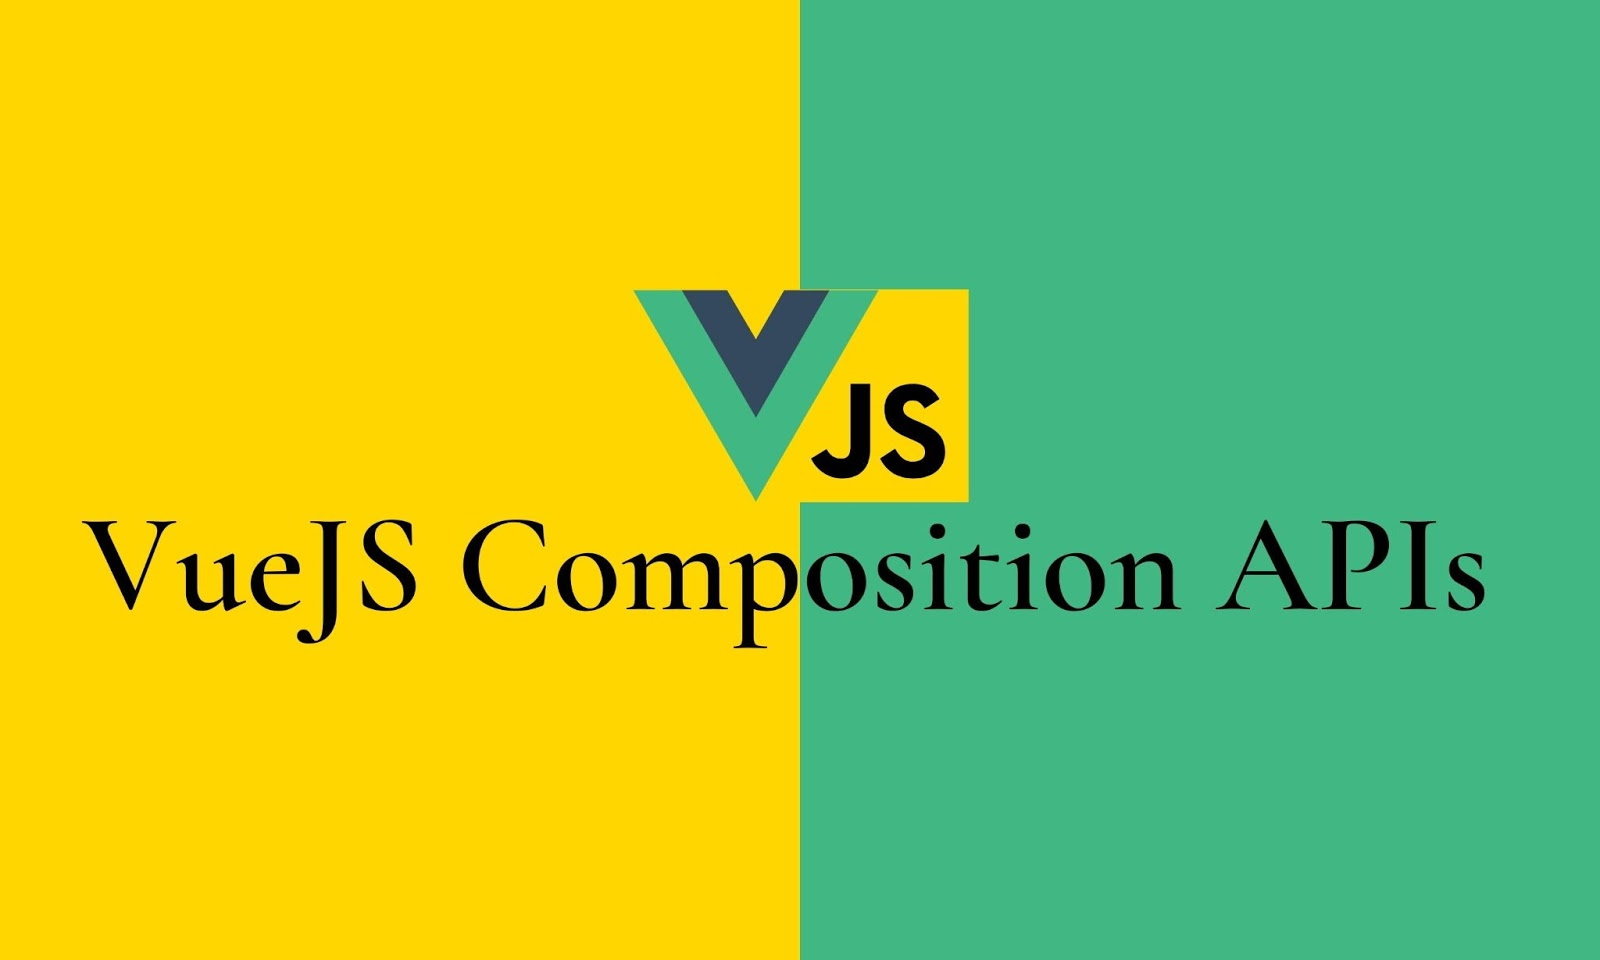 What's New with the Composition API in VueJS